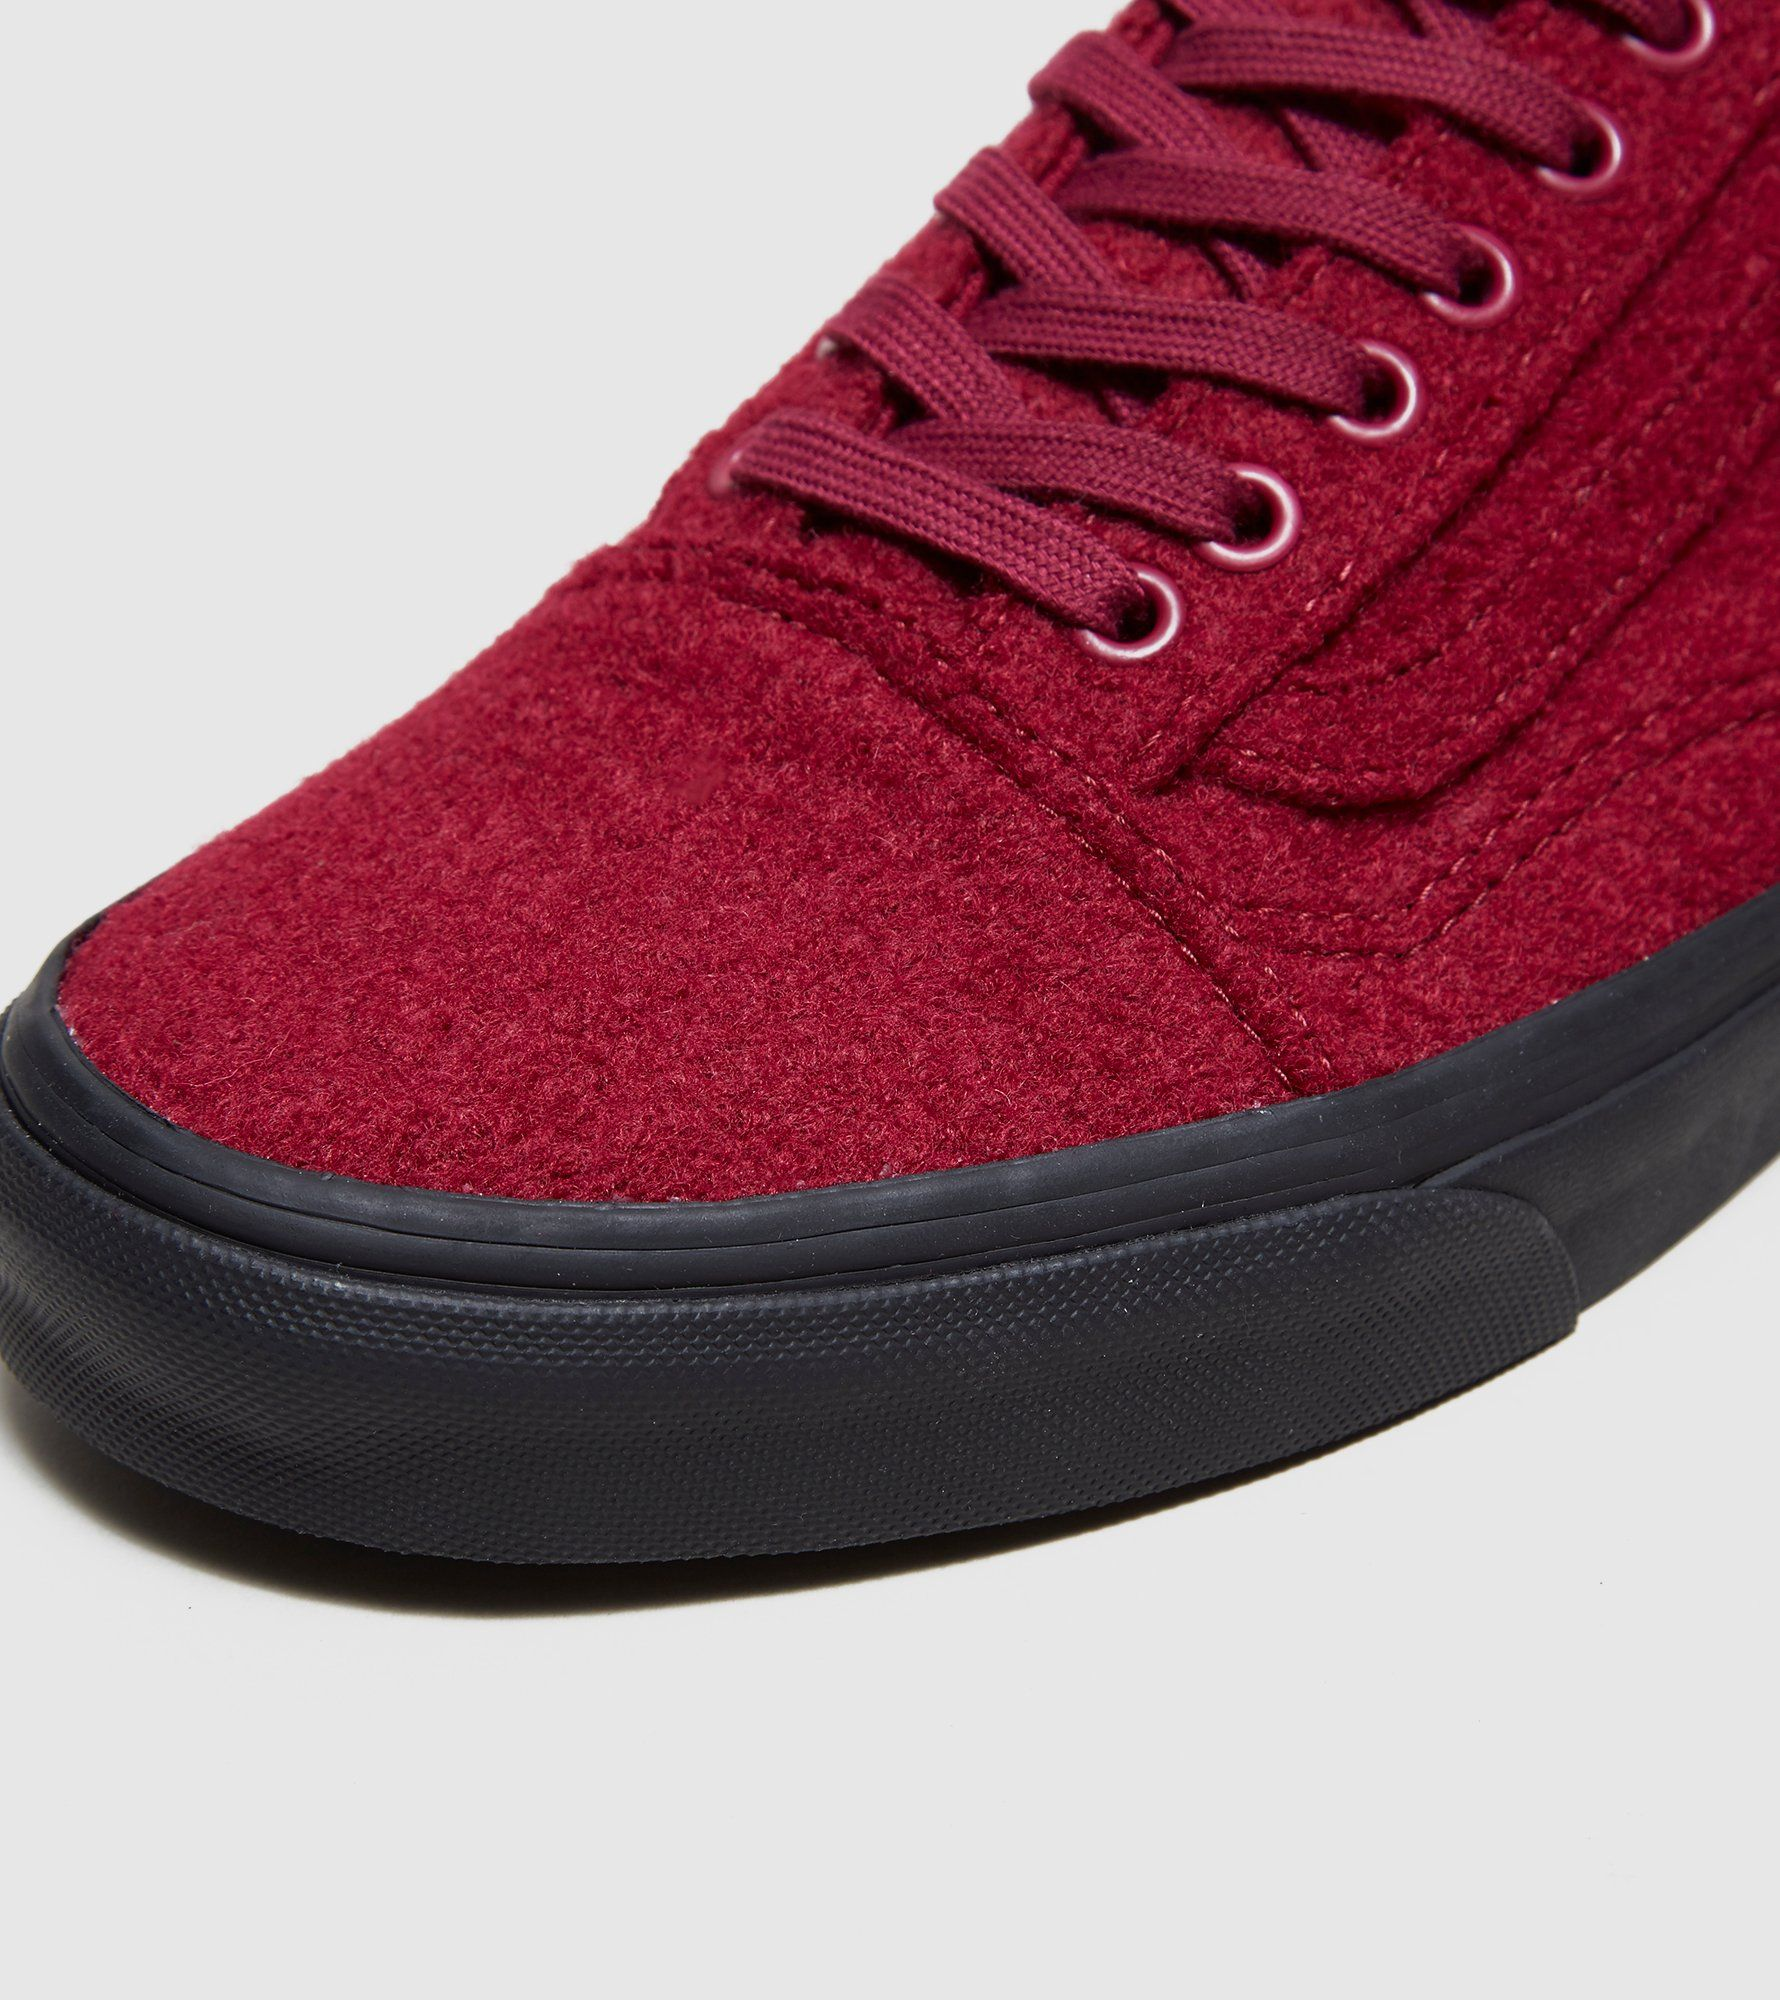 Vans Old Skool 'Wool' Pack - size? Exclusive